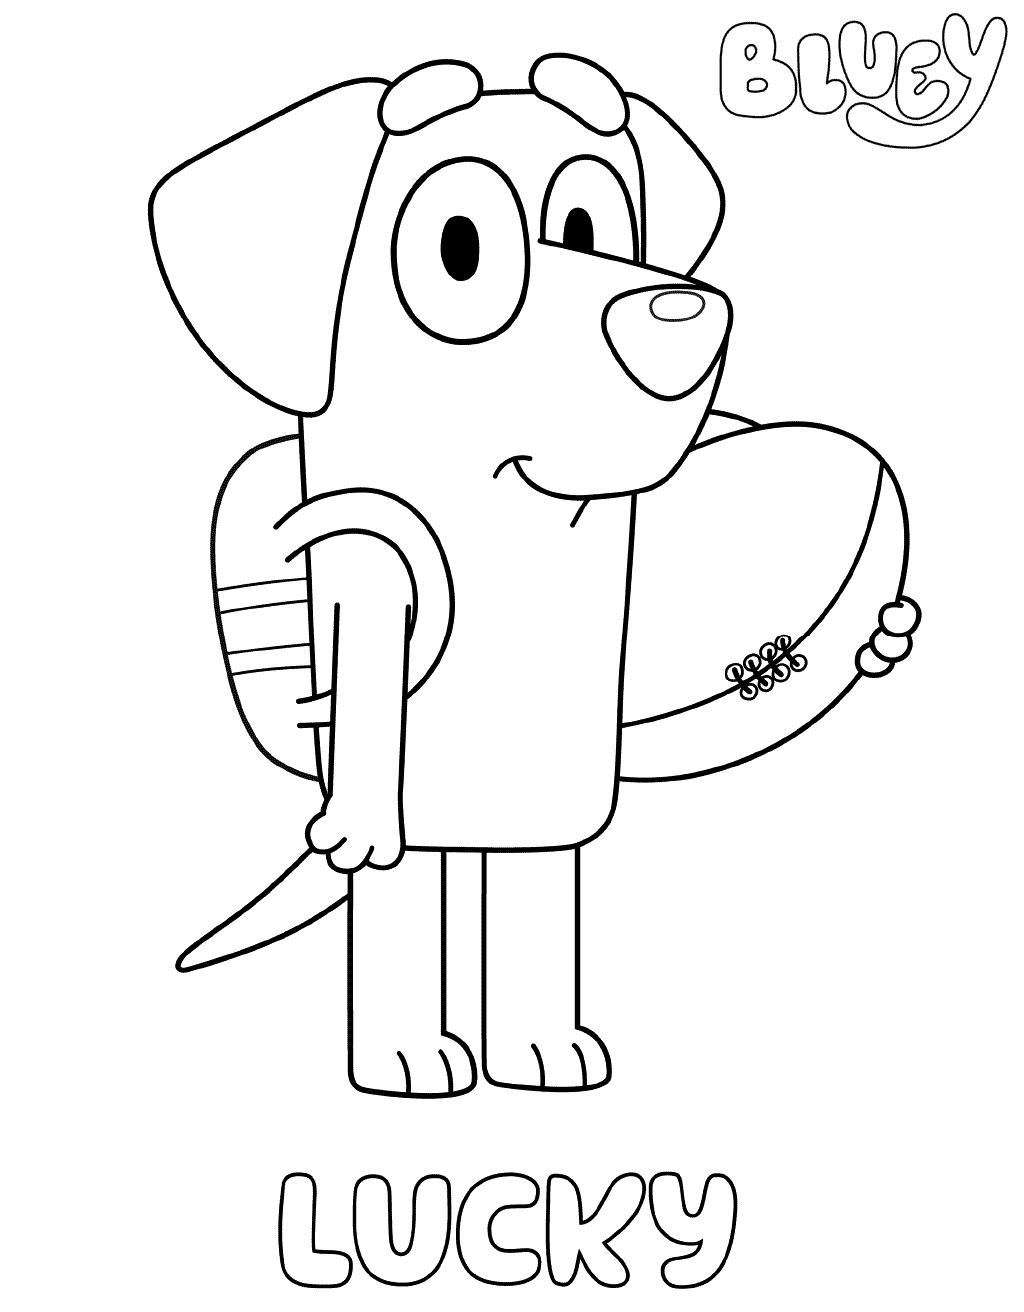 Lucky Bluey Coloring Pages